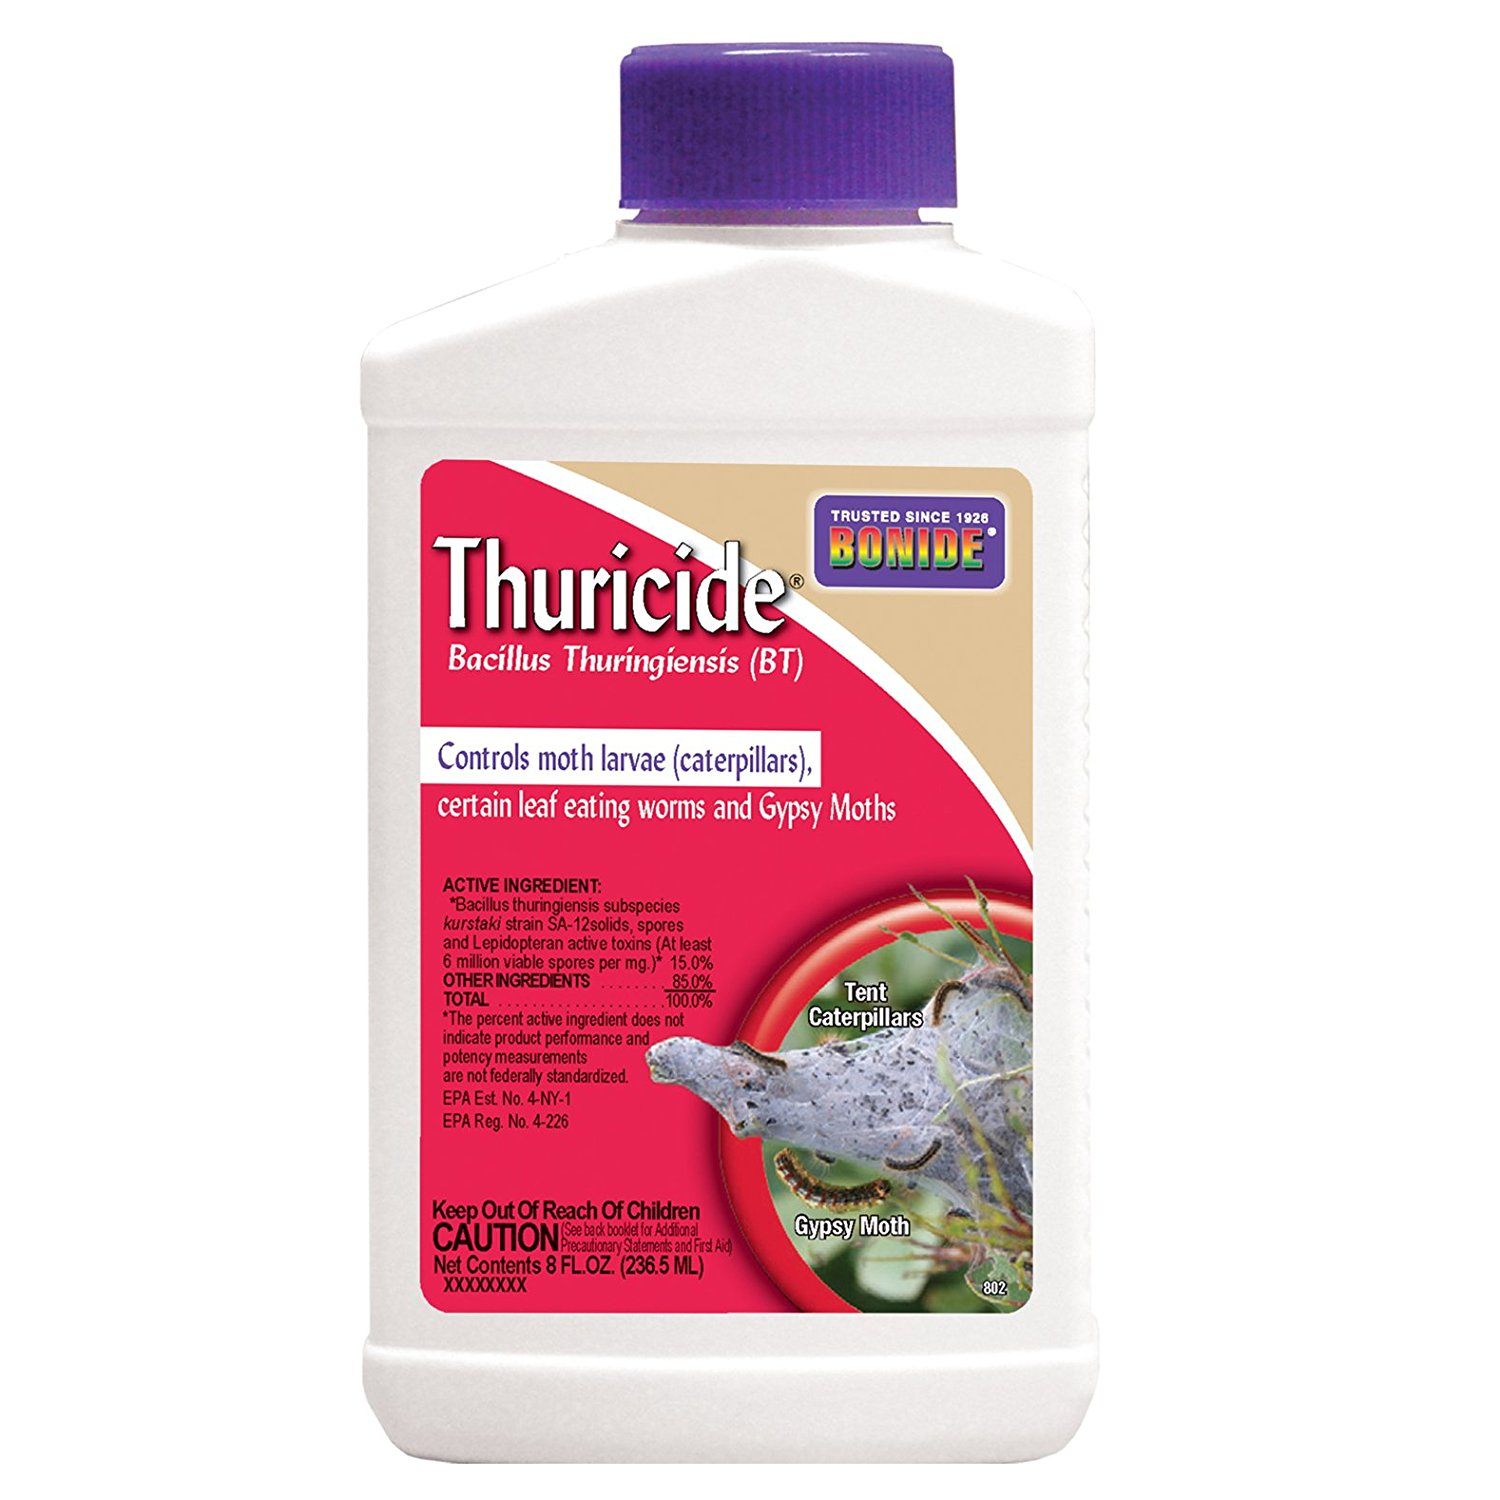 Bonide Thuricide Bt Insect Killer on Amazon